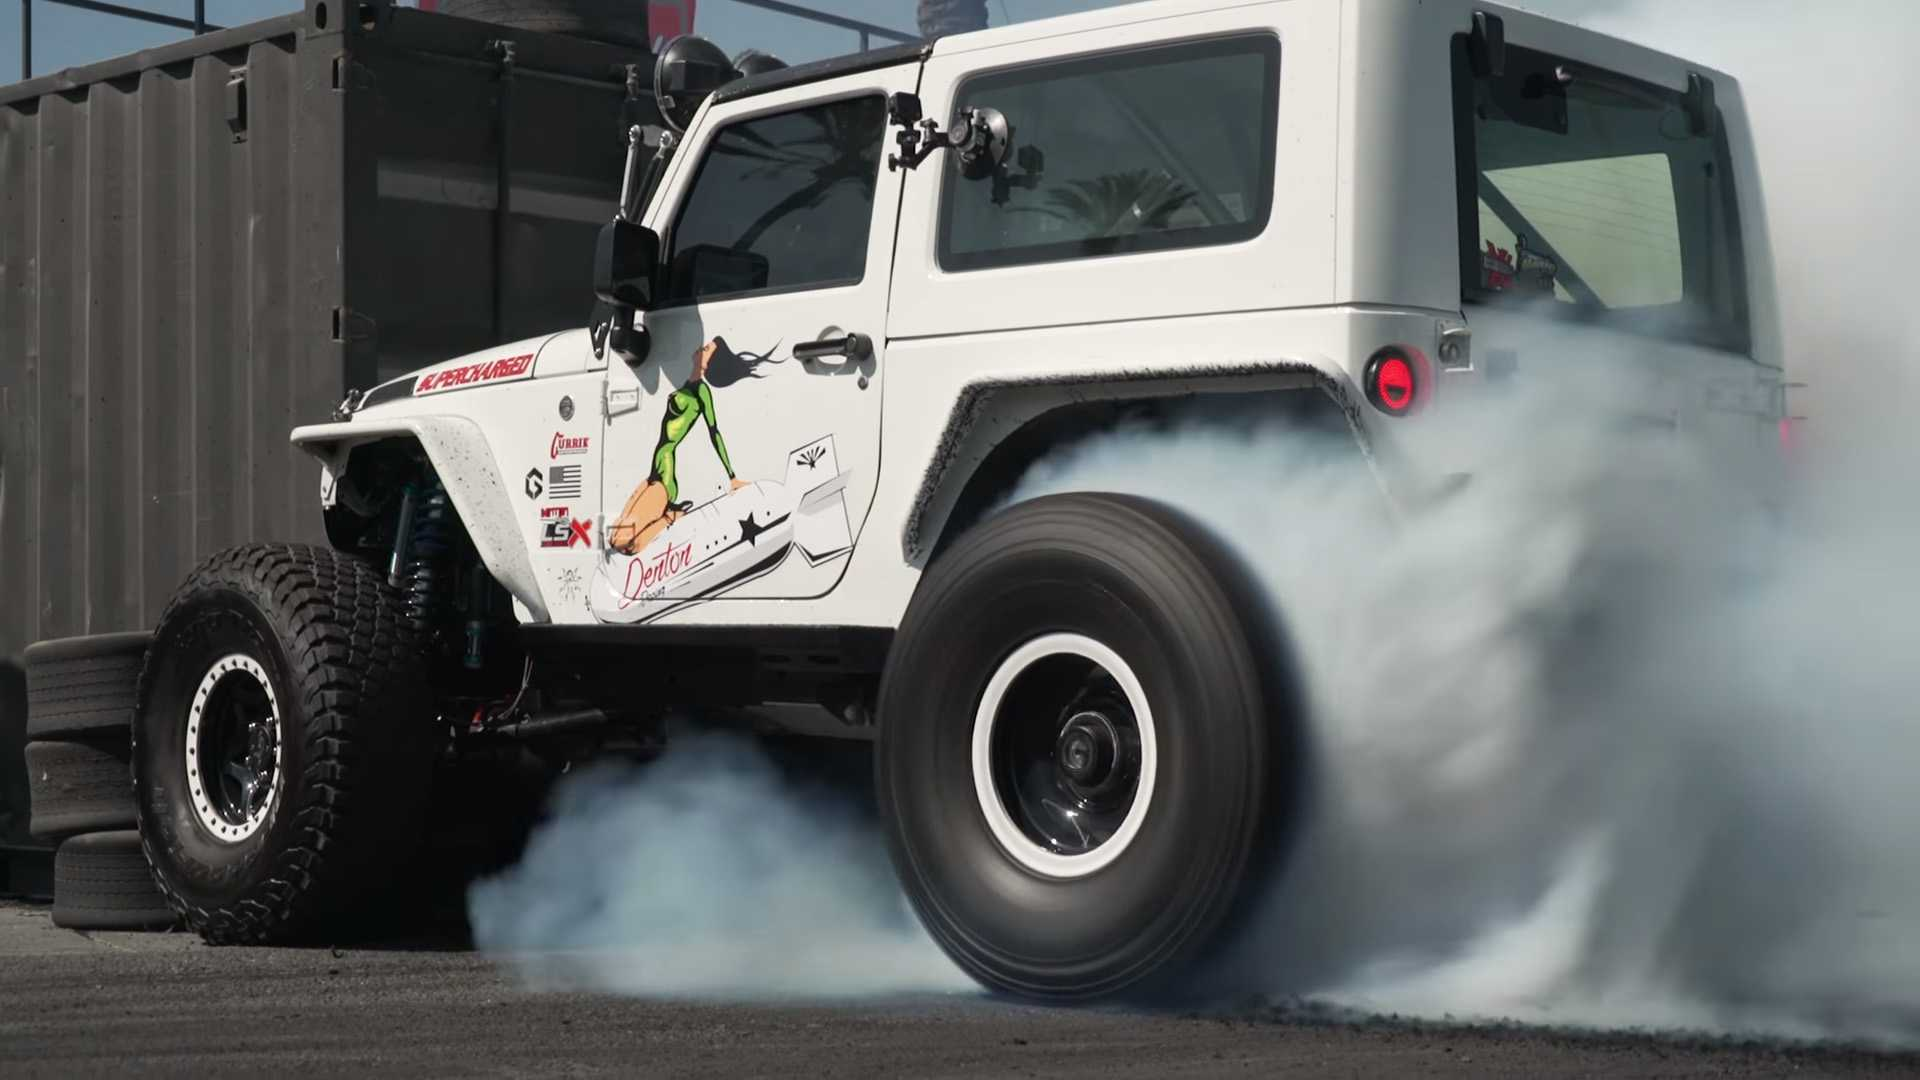 Tires For Jeep Wrangler >> See Ls Swapped Jeep Wrangler With 930 Hp Assault Its Off Road Tires